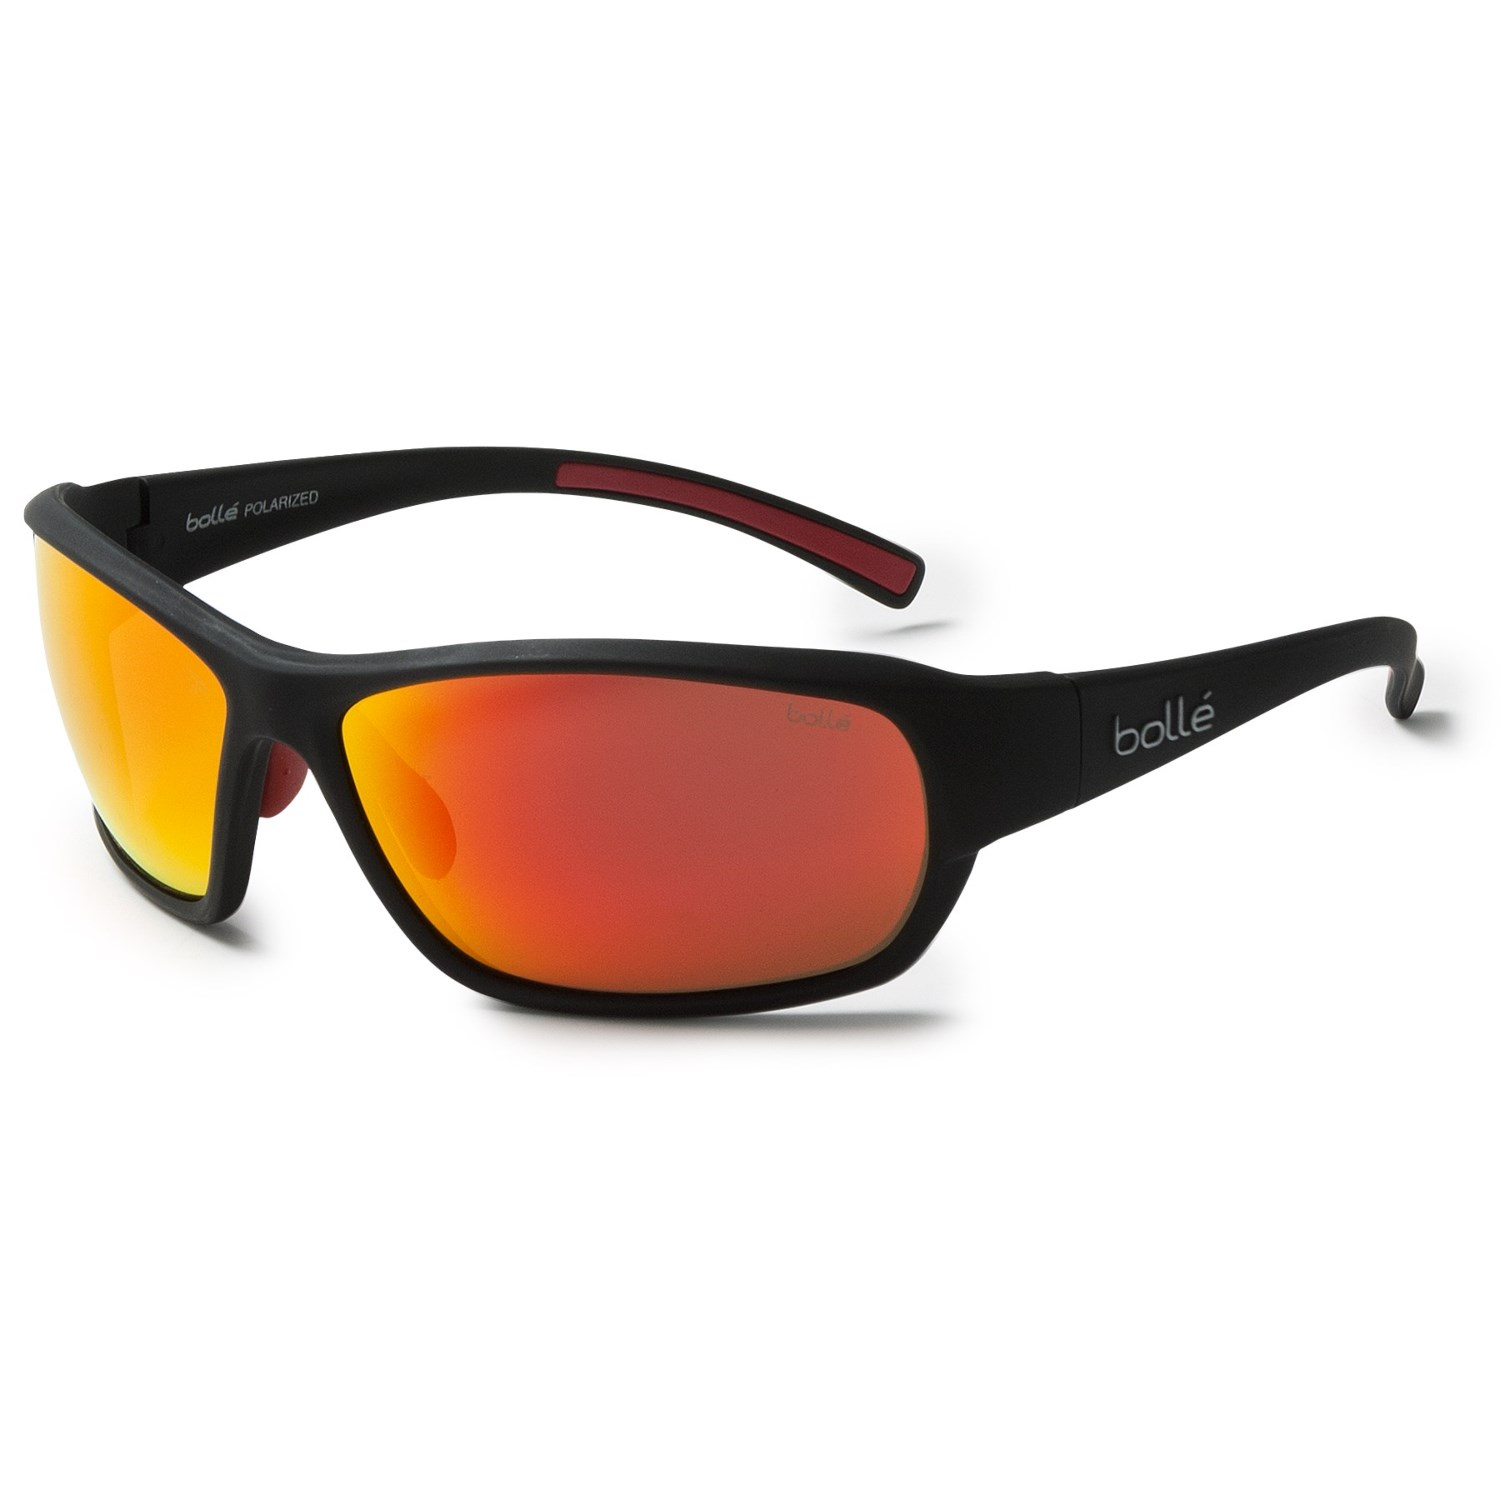 bolle polarized sunglasses 5rvf  Click to expand